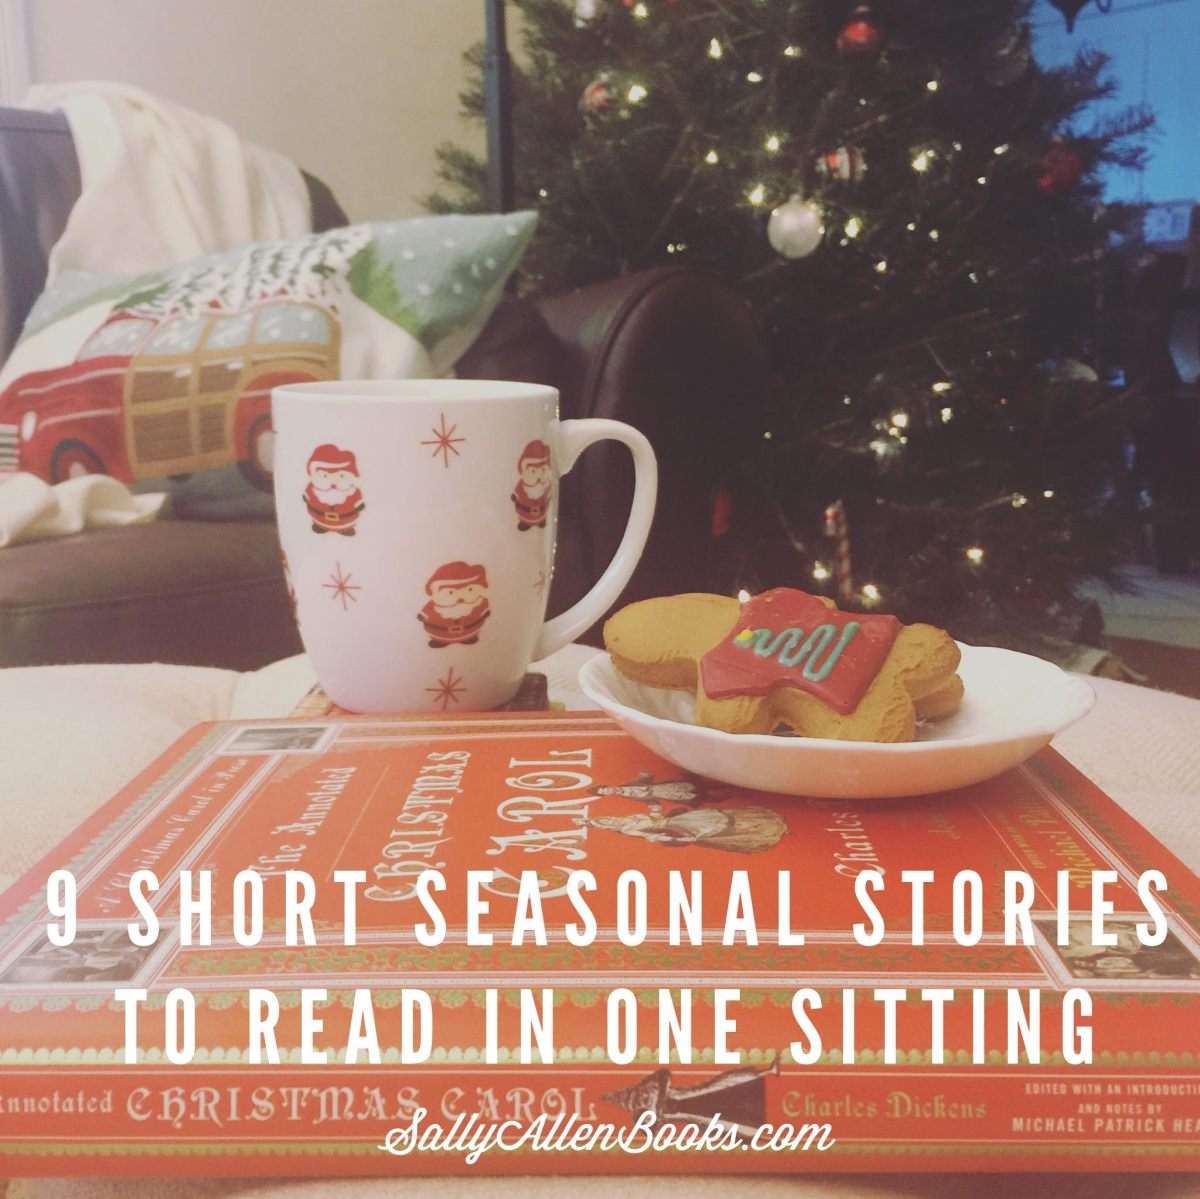 9 Short Seasonal Stories to Read in One Sitting